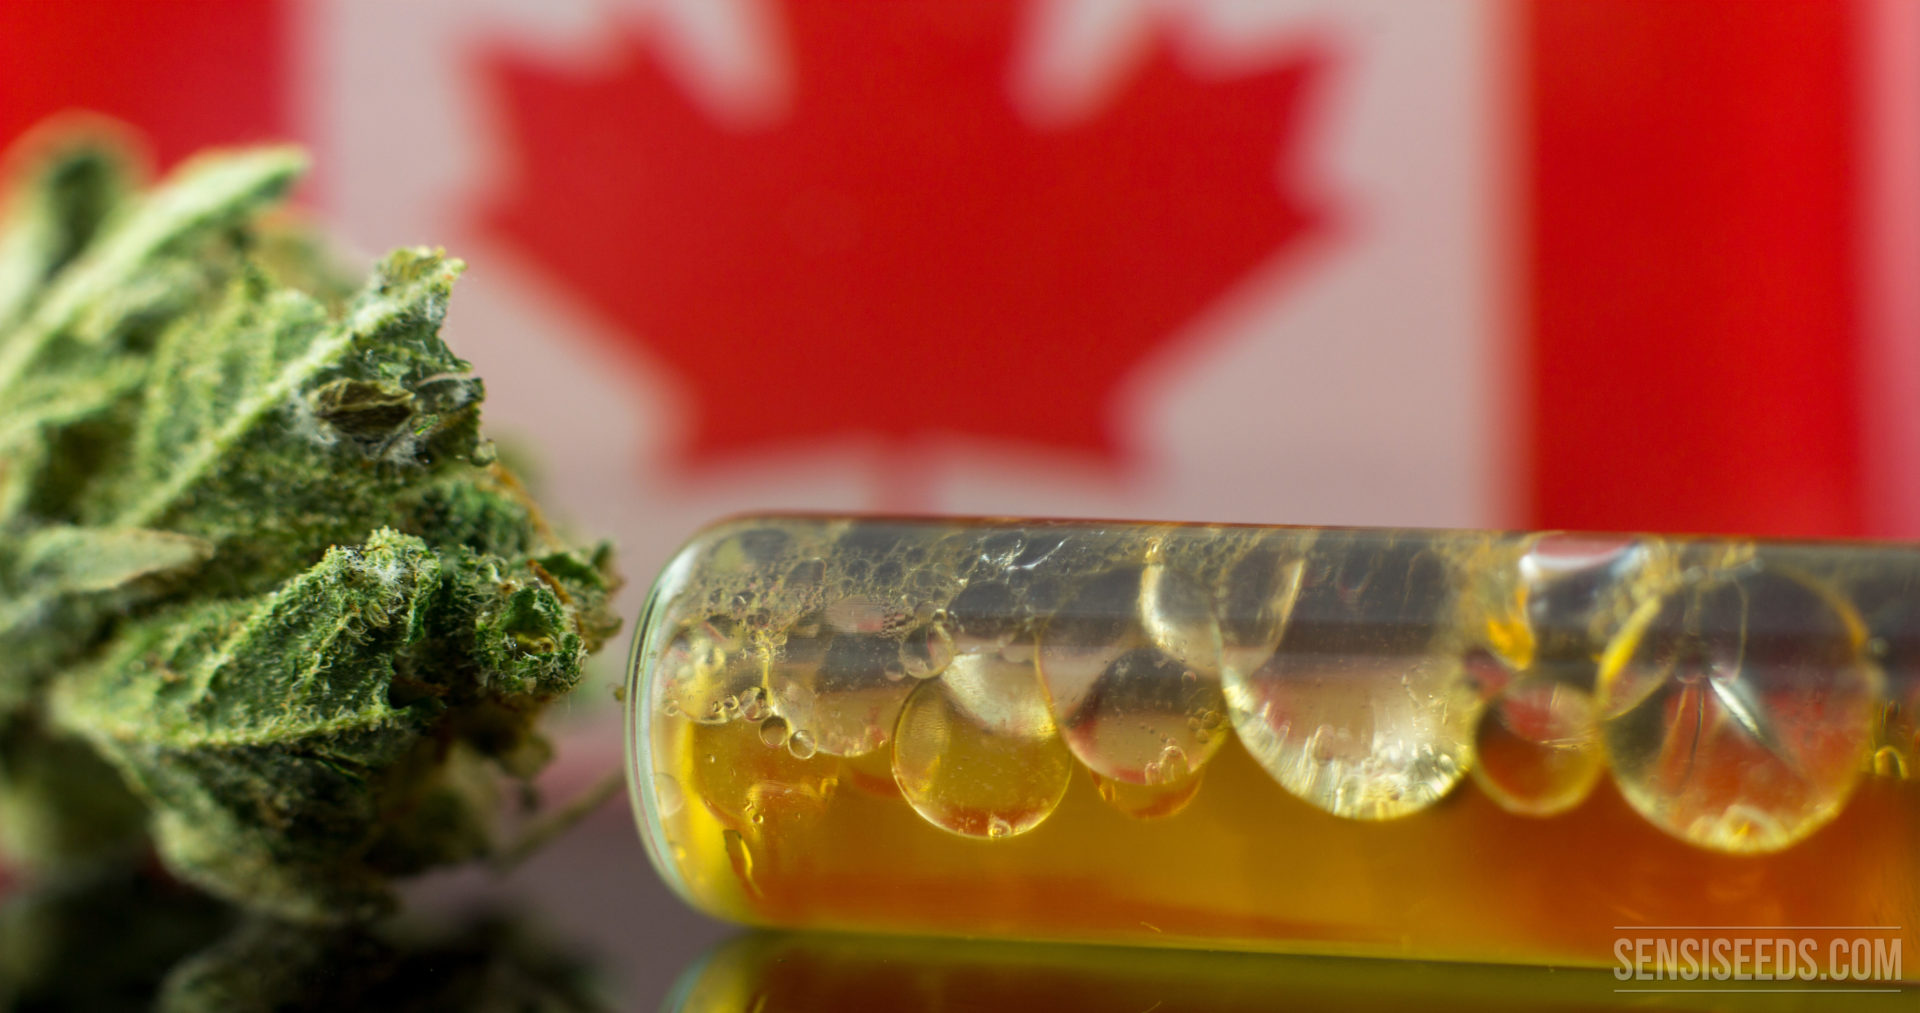 The Future of Medicinal Cannabis in Canada